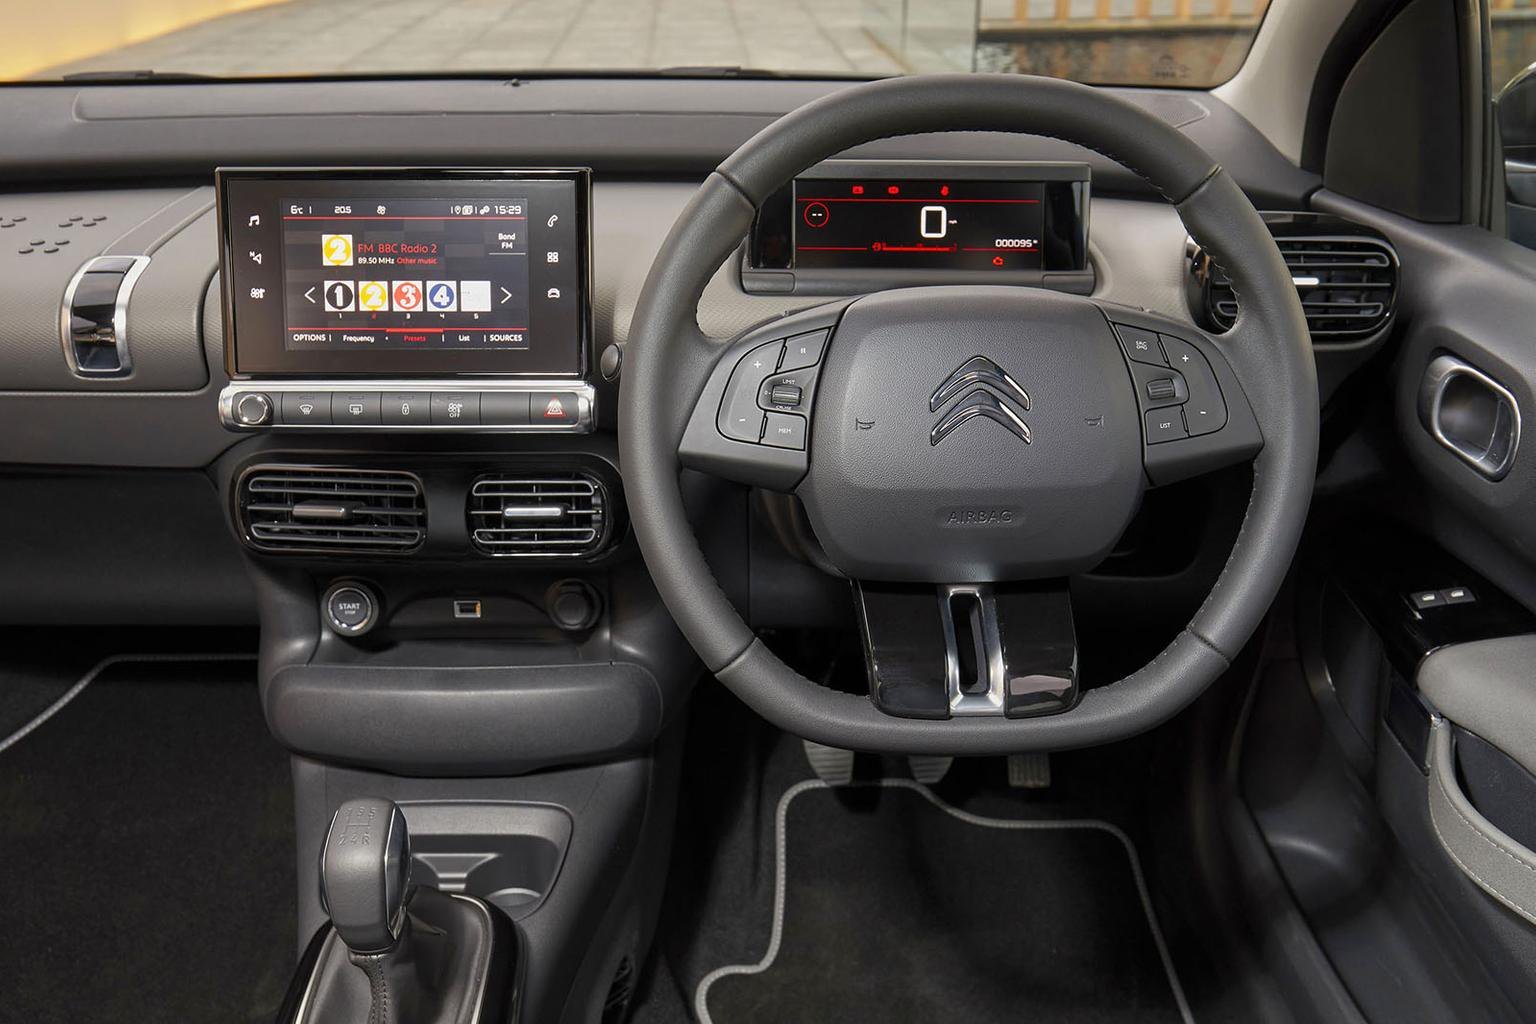 Citroën C4 Cactus Interior, Sat Nav, Dashboard | What Car?